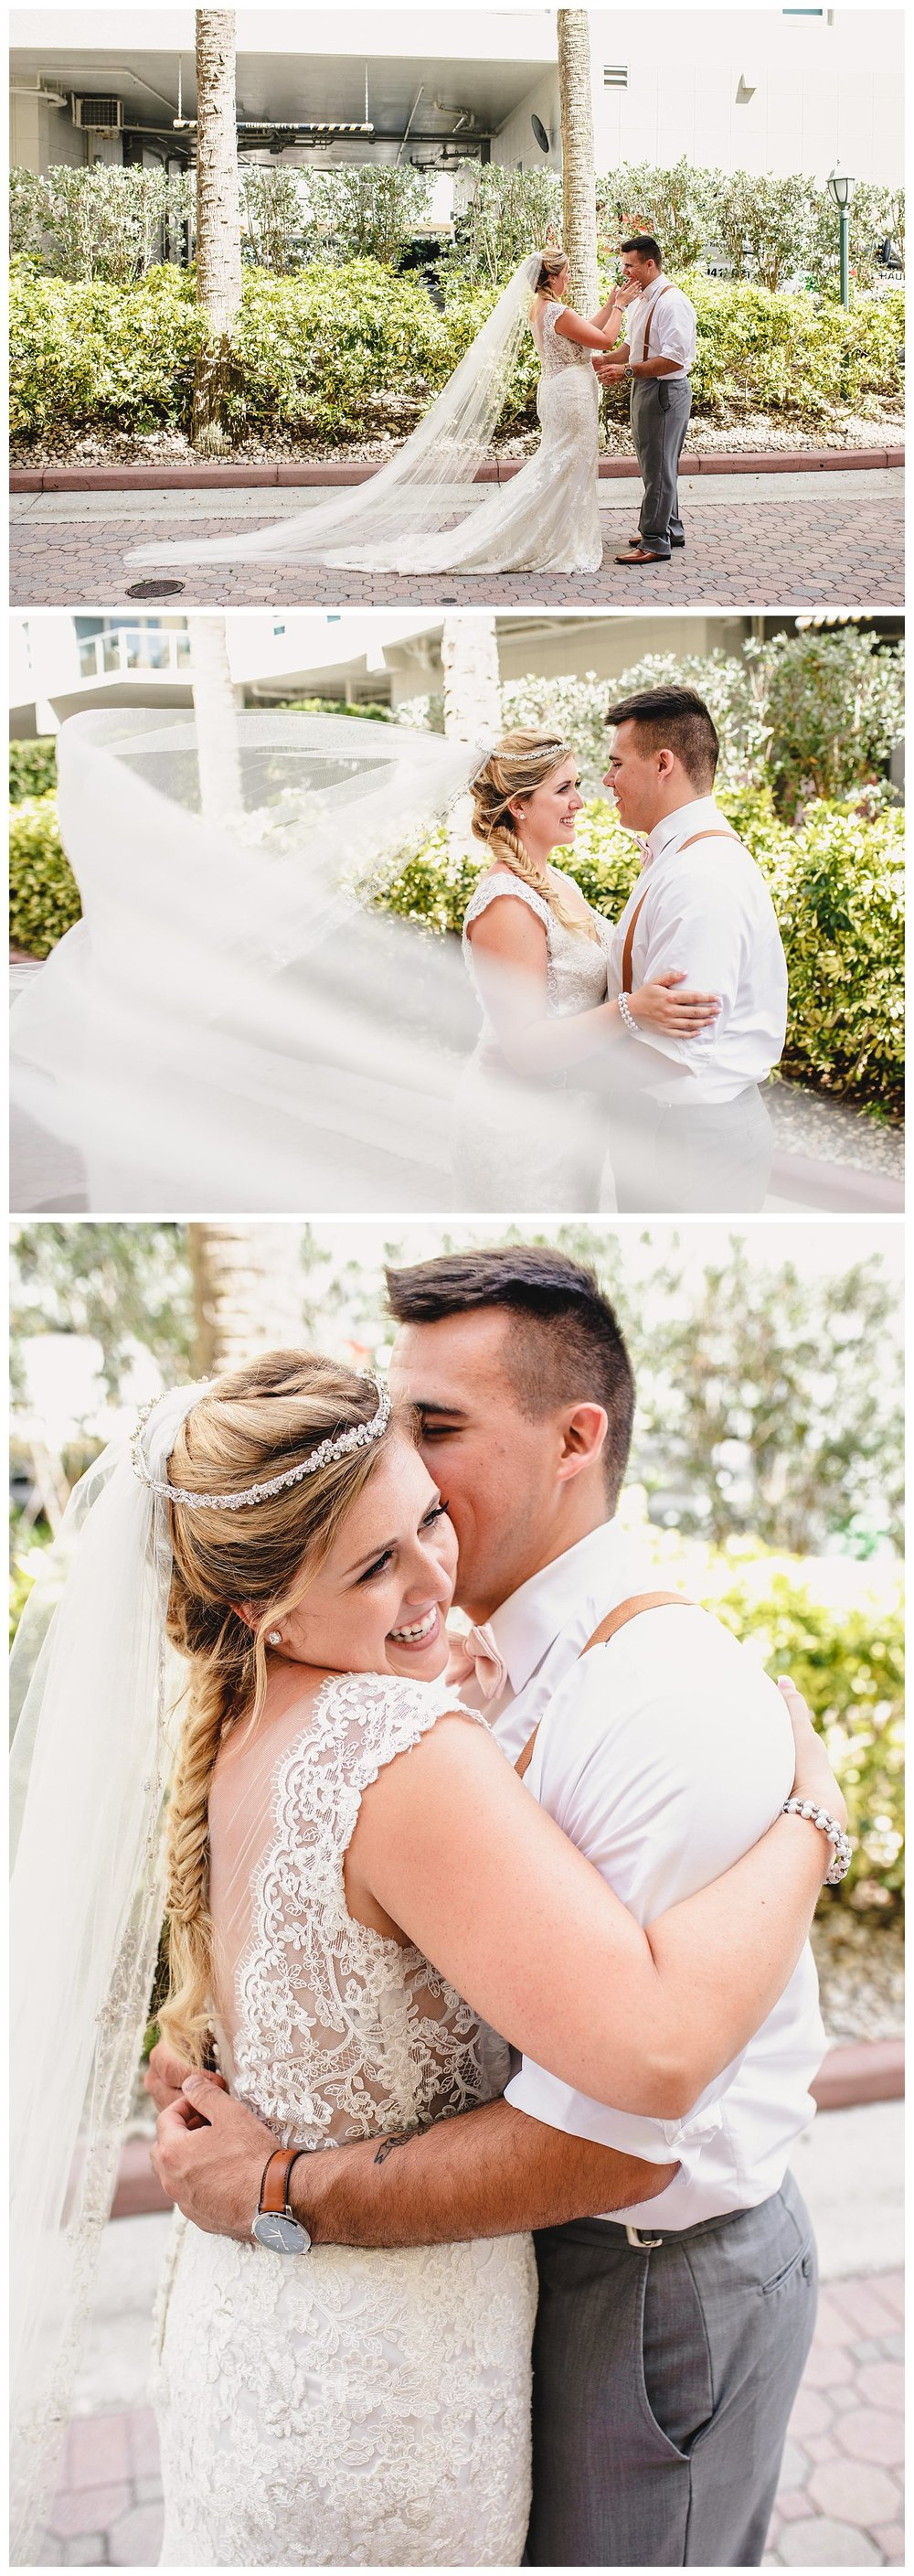 Kelsey_Diane_Photography_Destination_Wedding_Sarasota_Florida_Beach_Wedding_Alex_Austin_0635.jpg